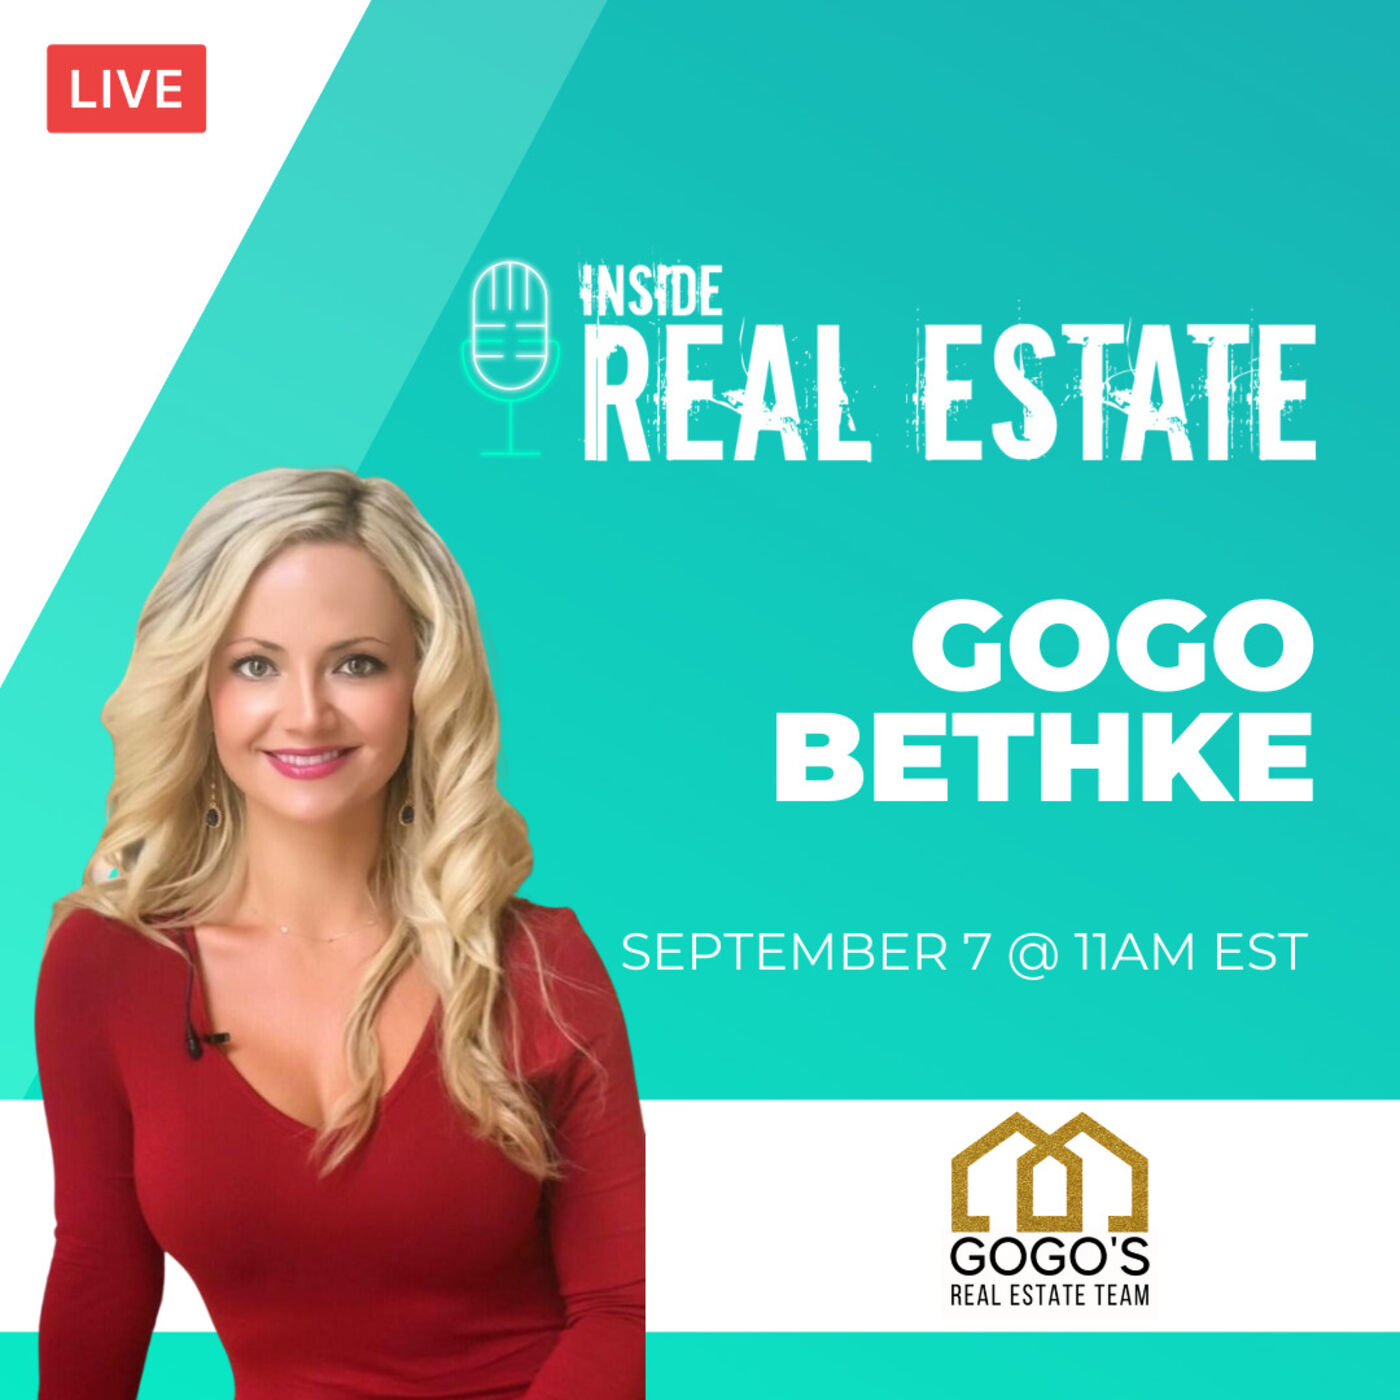 Gogo Bethke, Gogo's Real Estate - Advice for Agents, Coaching, and More